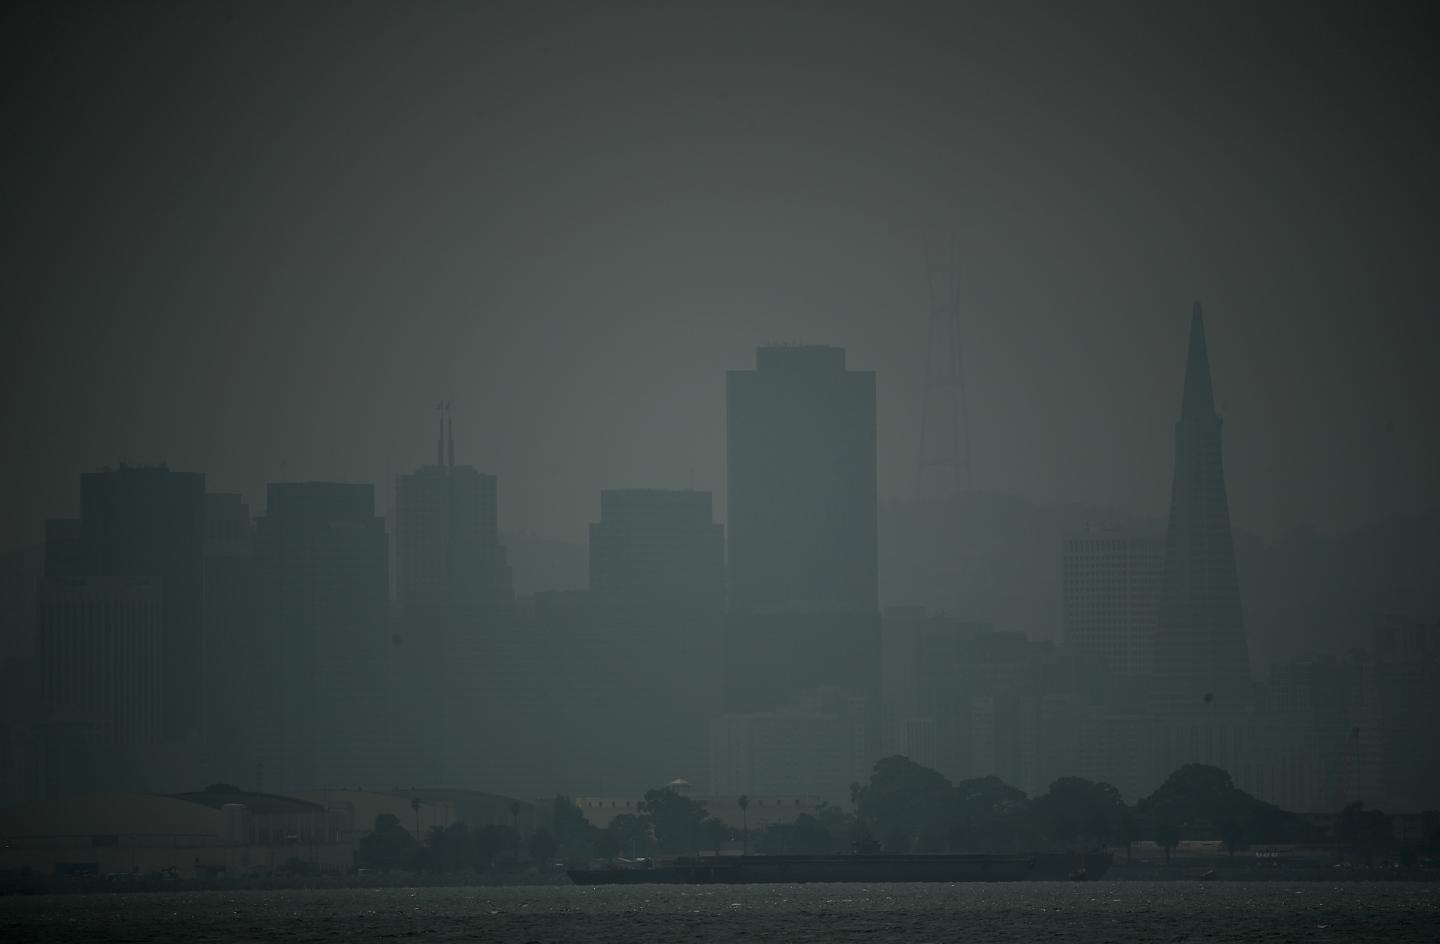 San Francisco, Bay Area air quality update, forecast: Air still 'unhealthy' due to wildfires https://t.co/tIuc6sVlaN https://t.co/NvLLzRBITt